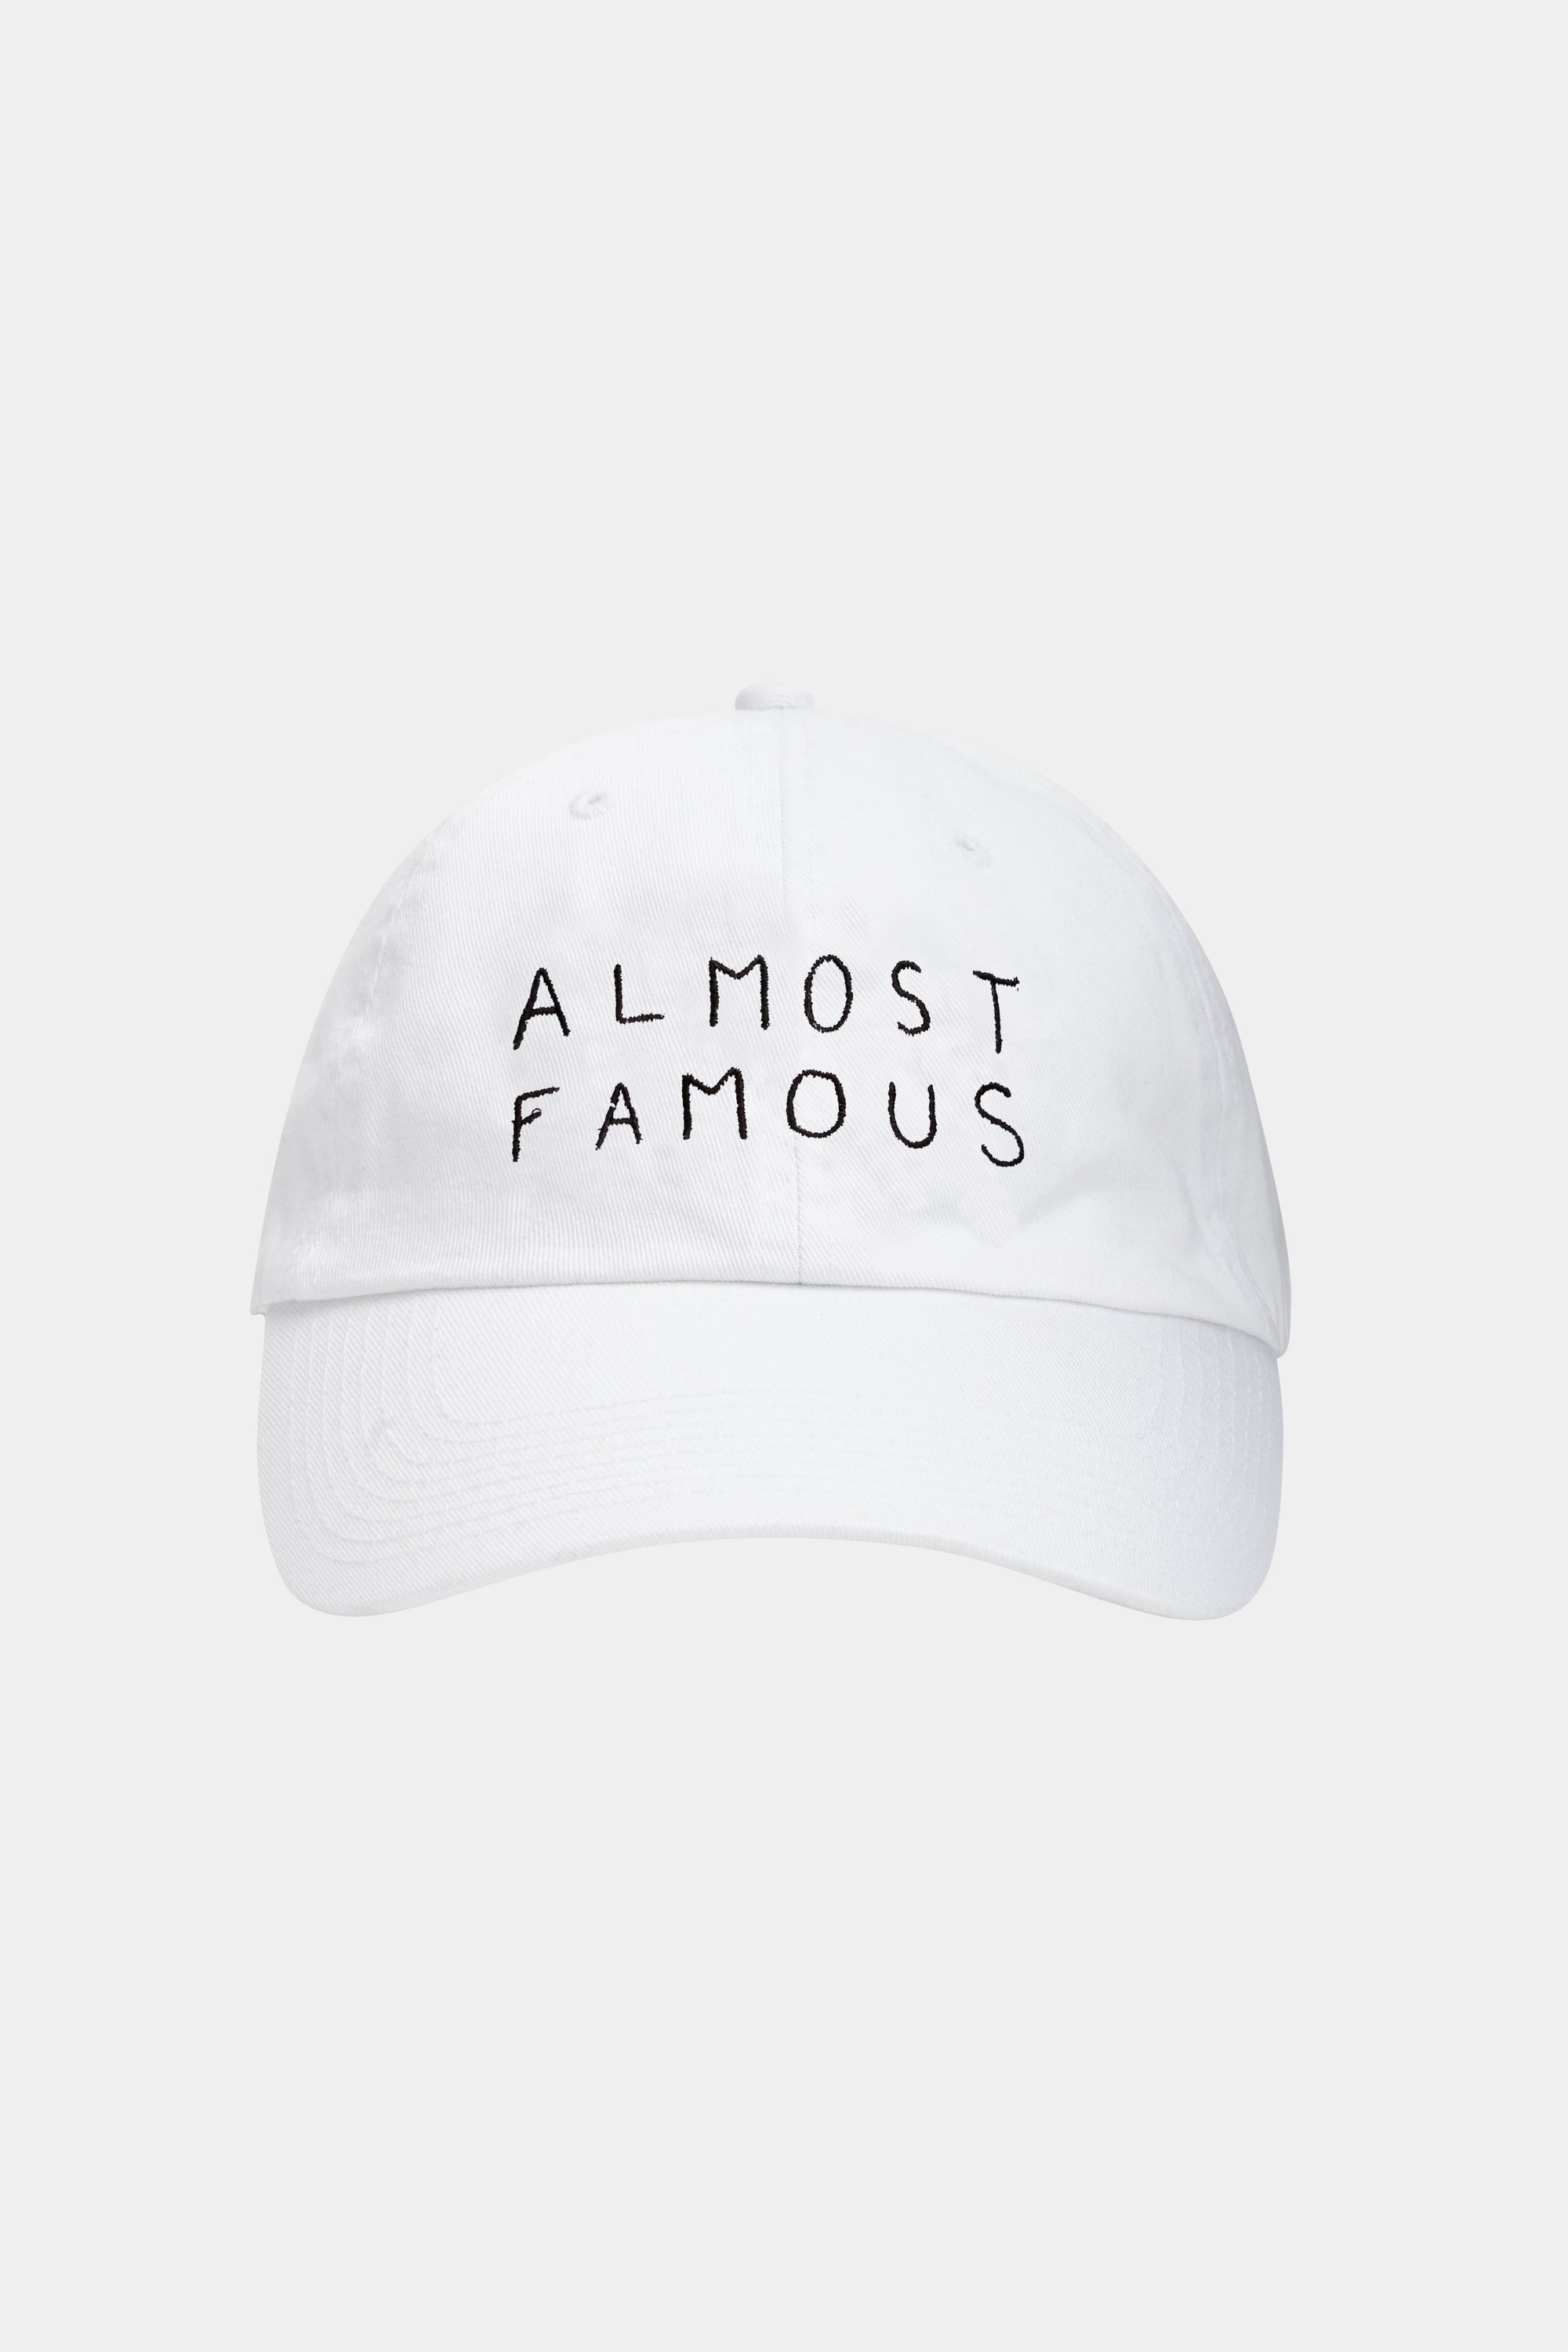 ALMOST FAMOUS CAP (WHITE)